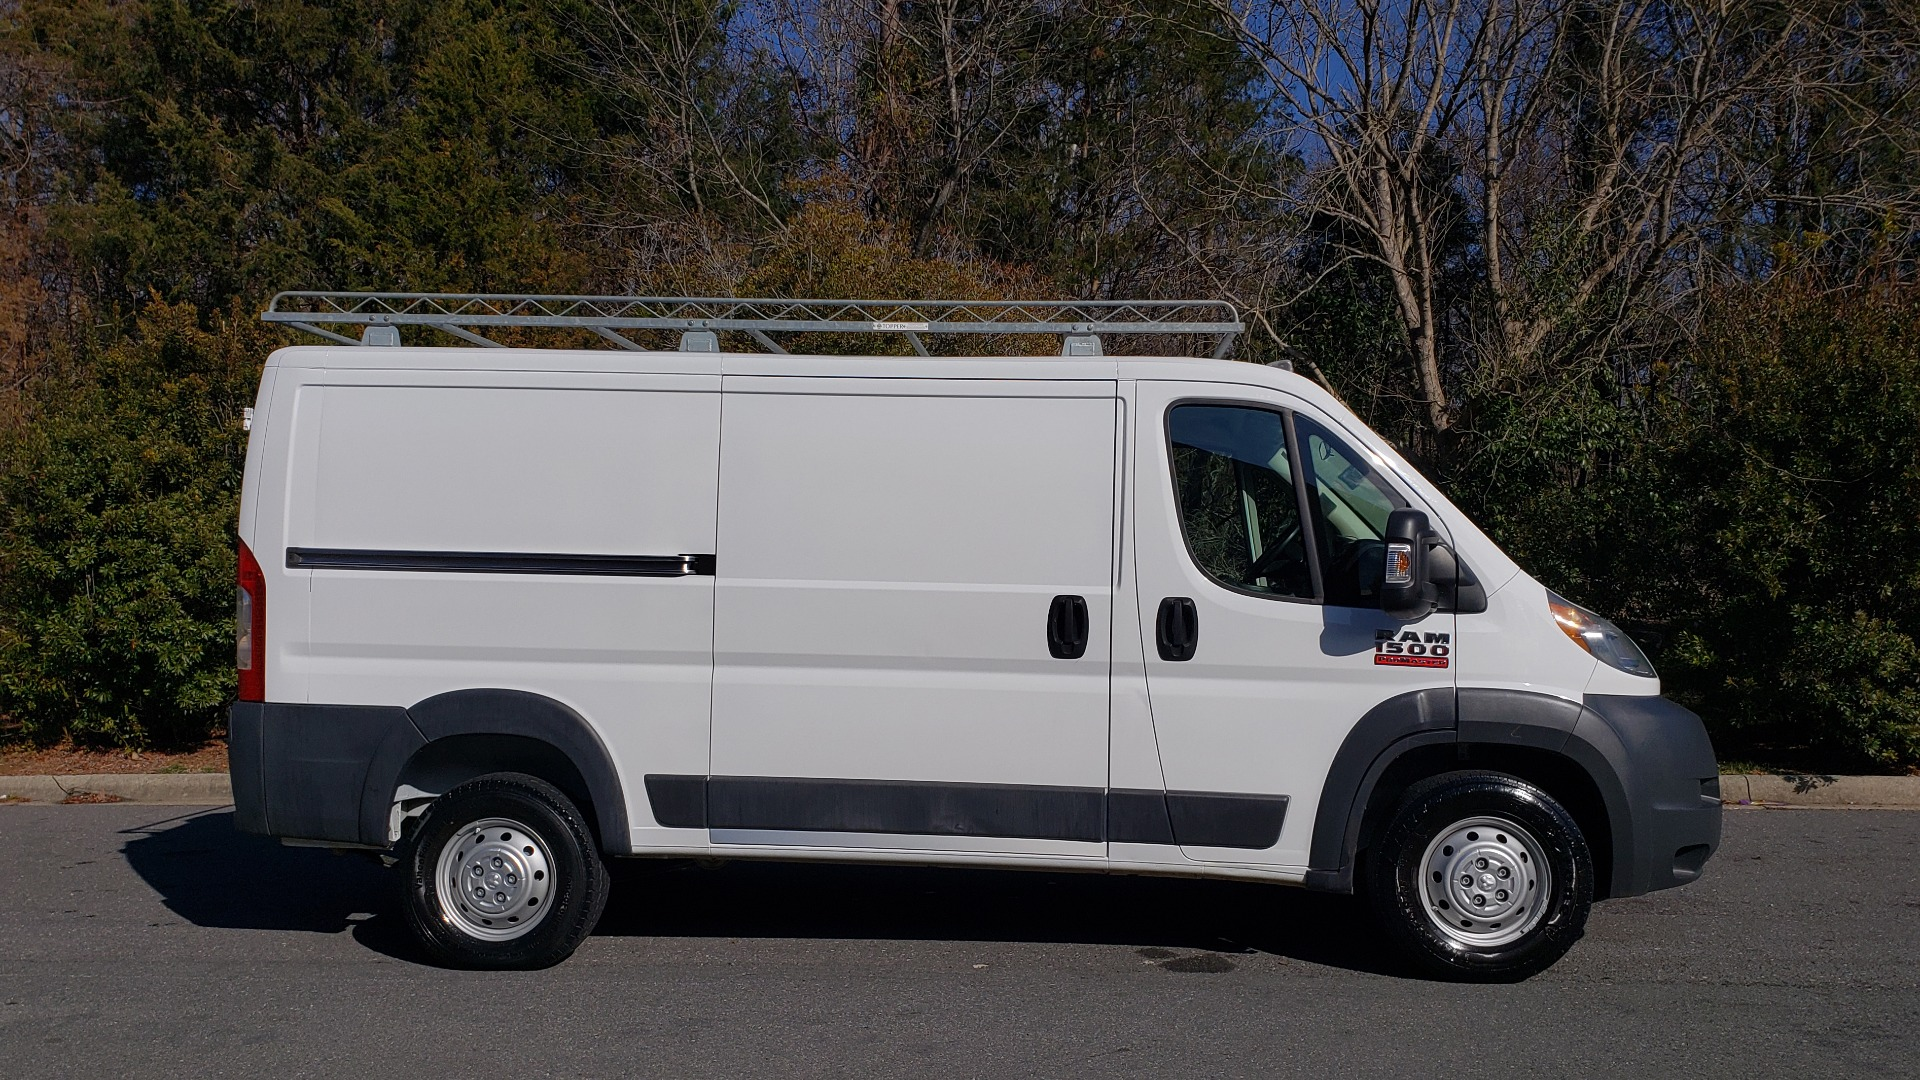 Used 2016 Ram PROMASTER CARGO VAN 136 WB / LOW ROOF / 3.6L V6 / 6-SPD AUTO / REARVIEW for sale $21,000 at Formula Imports in Charlotte NC 28227 5